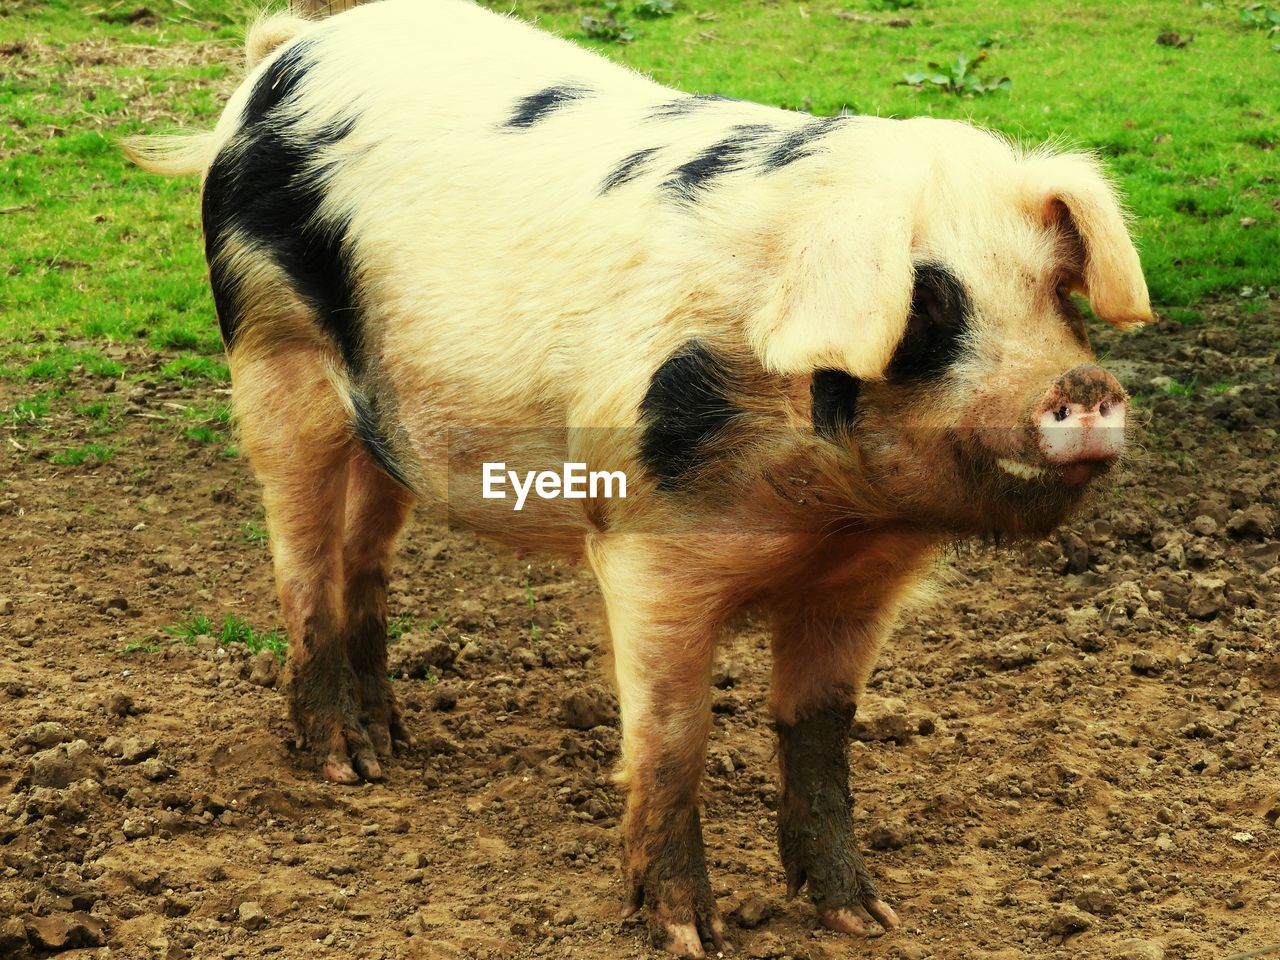 domestic animals, animal themes, mammal, field, livestock, one animal, no people, cow, day, young animal, nature, outdoors, standing, grass, piglet, close-up